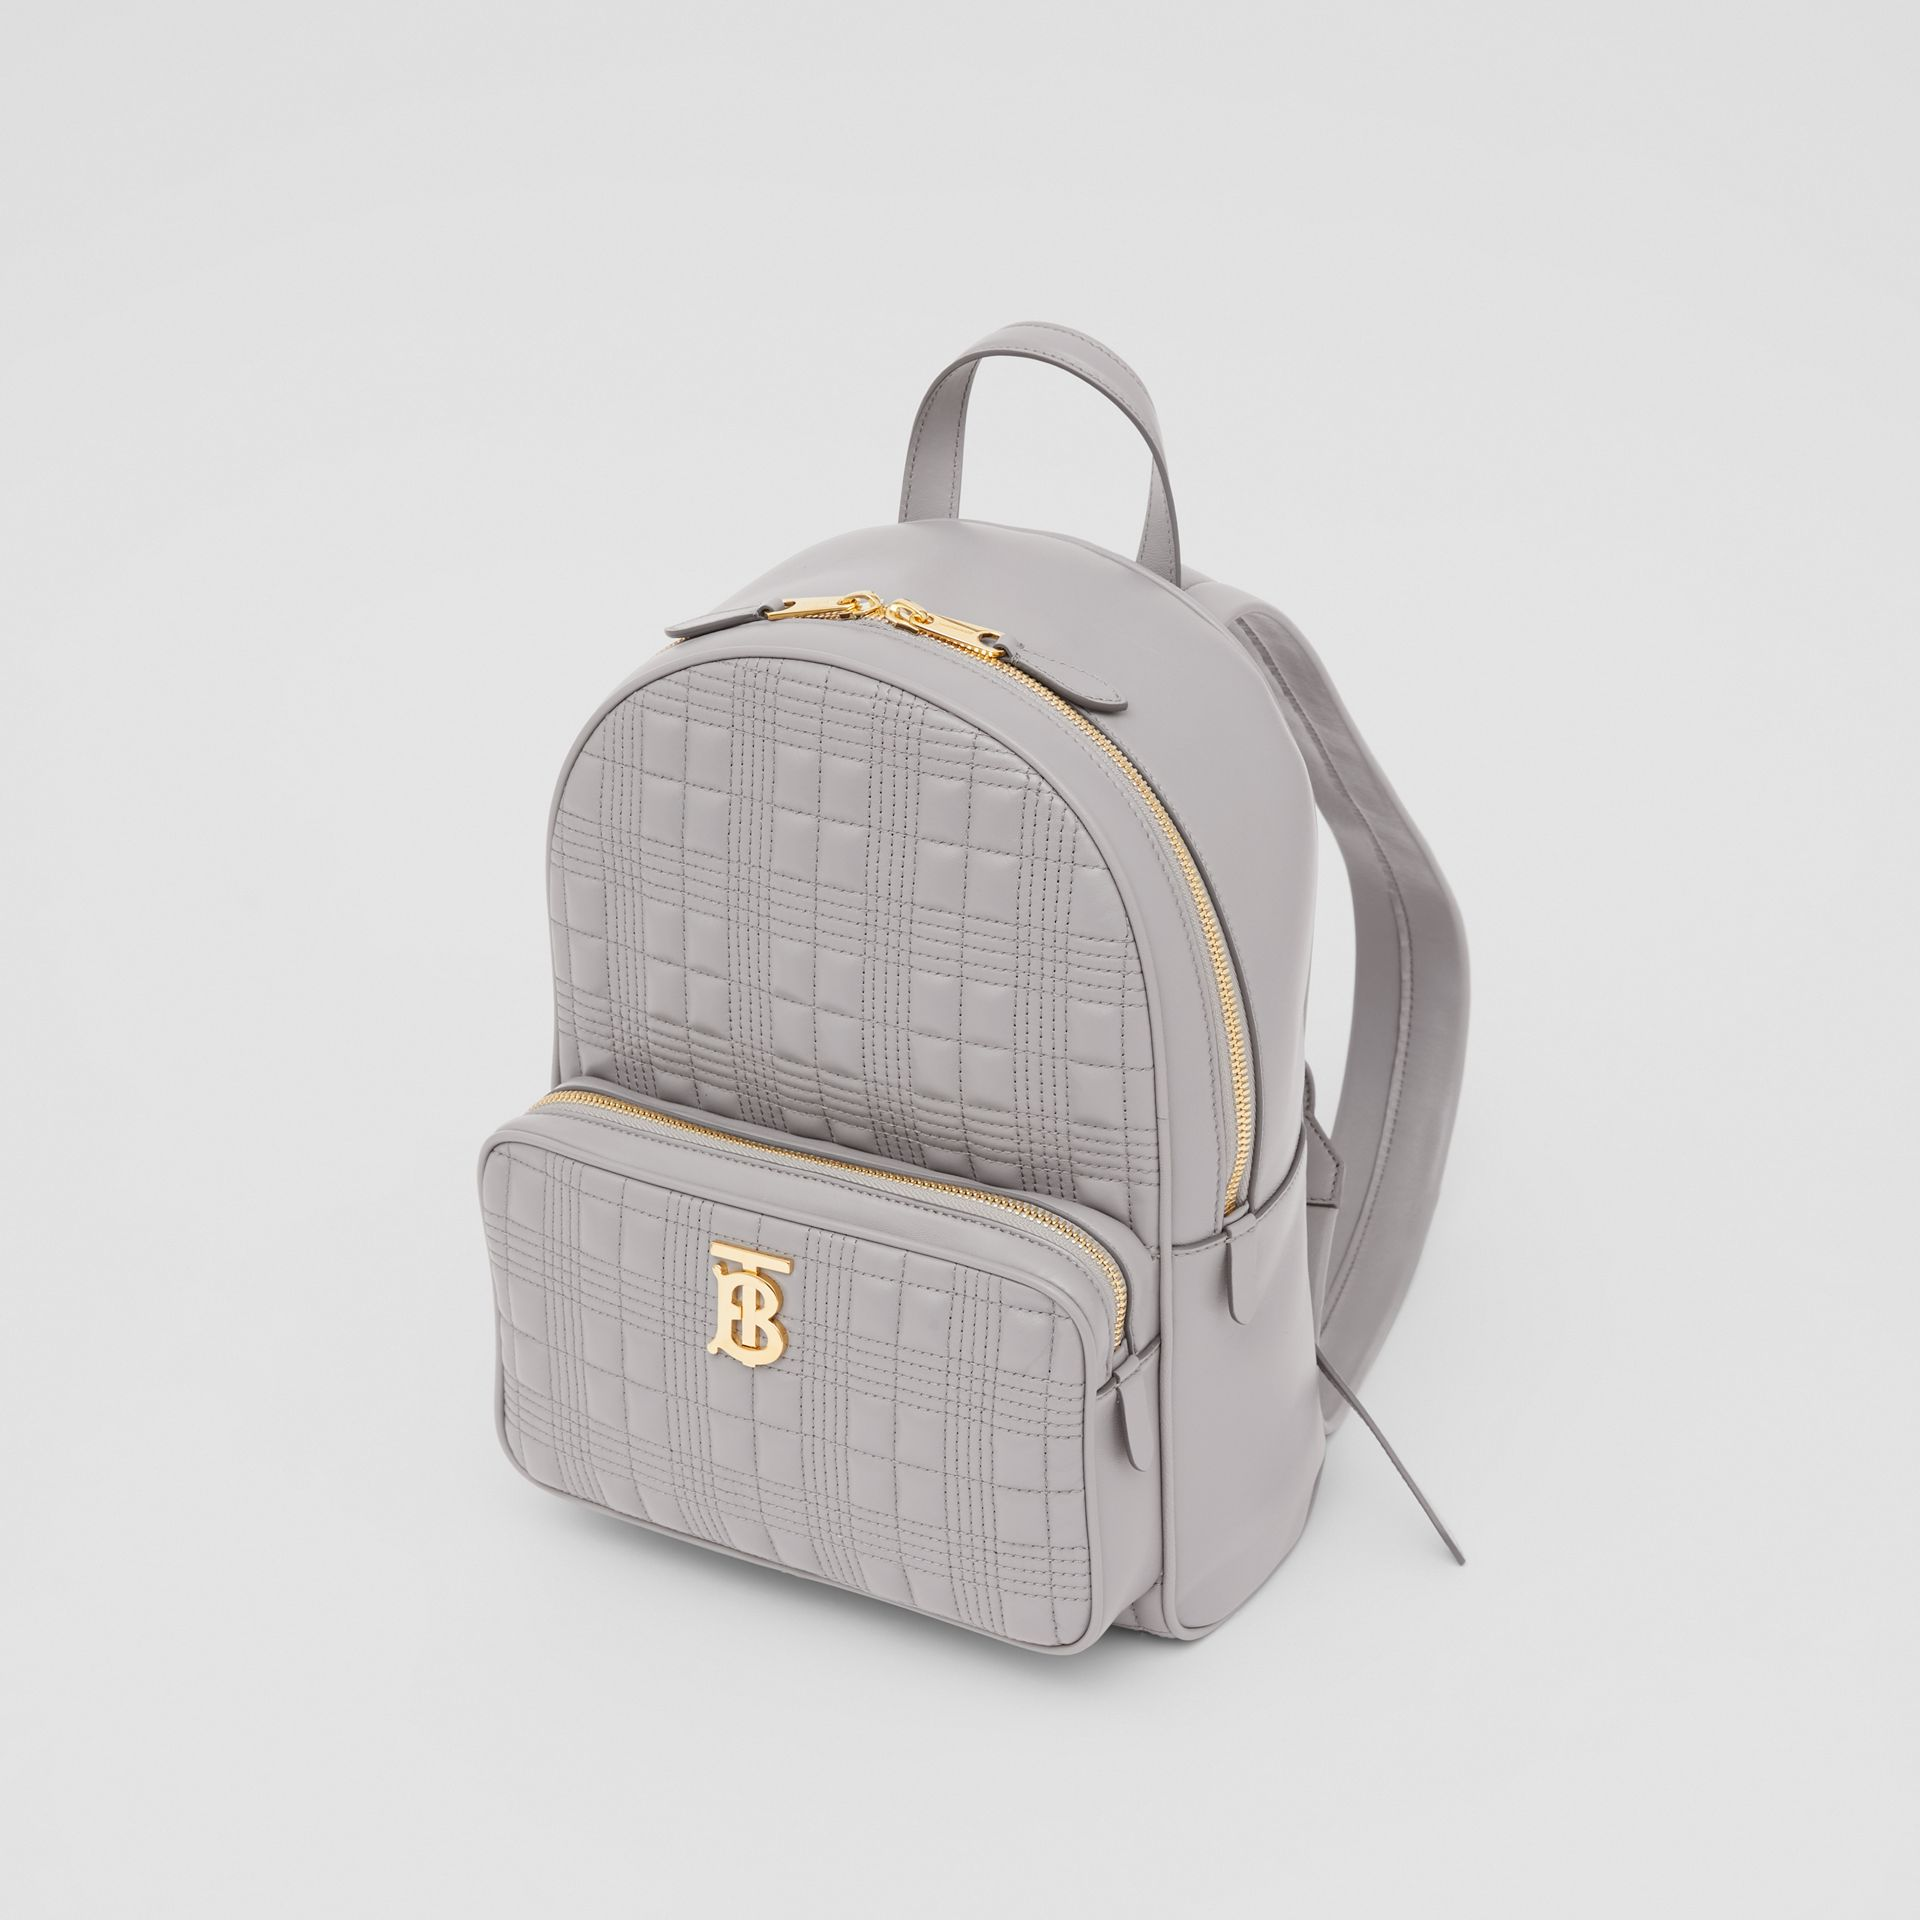 Quilted Lambskin Backpack in Cloud Grey - Women | Burberry United States - gallery image 3